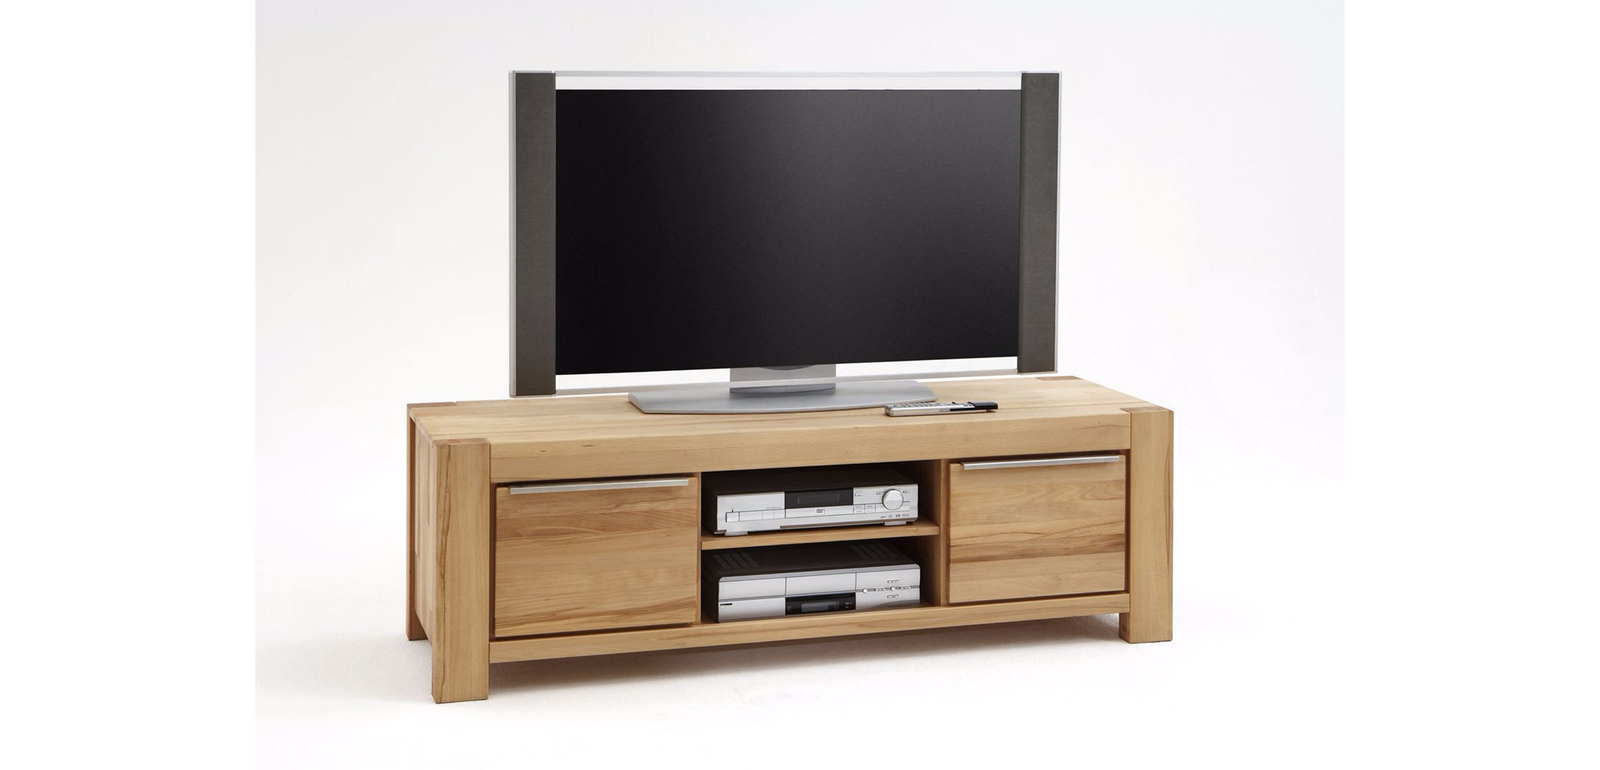 elfo tv kommode fernsehschrank nena massivholz von elfo g nstig bestellen skanm bler. Black Bedroom Furniture Sets. Home Design Ideas